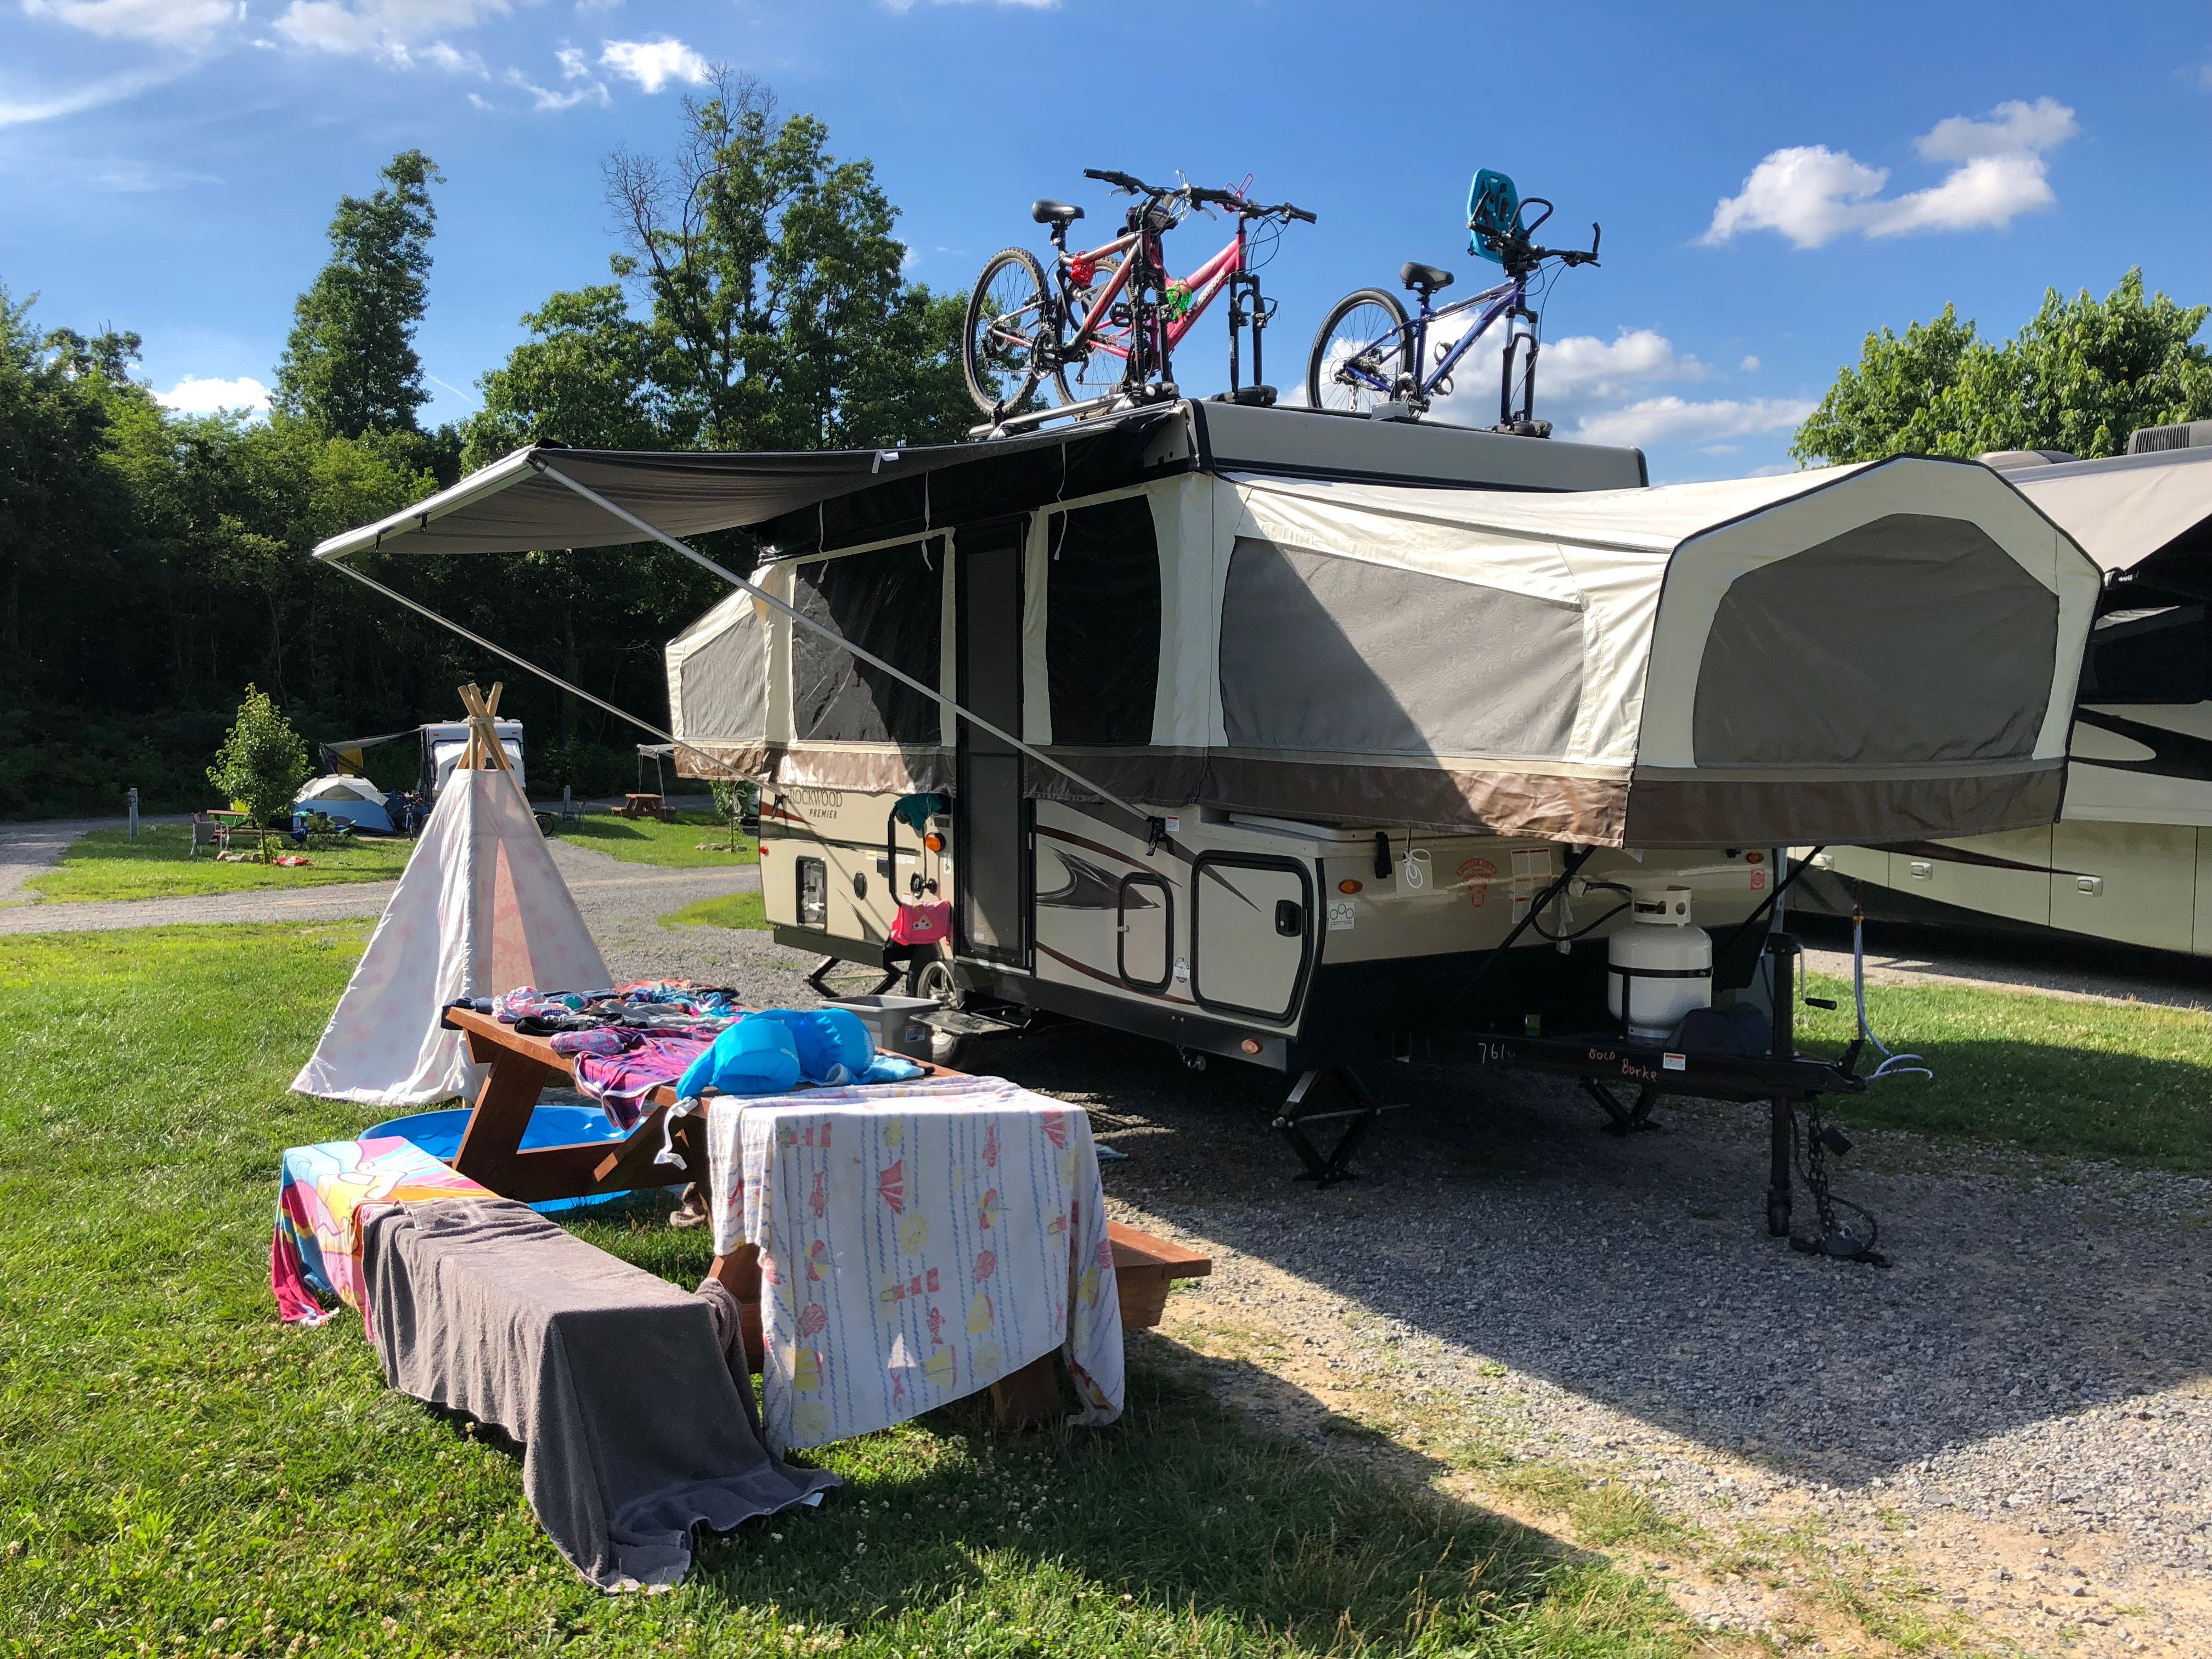 6 BEST Campgrounds & RV Parks in Sixmile Run, New